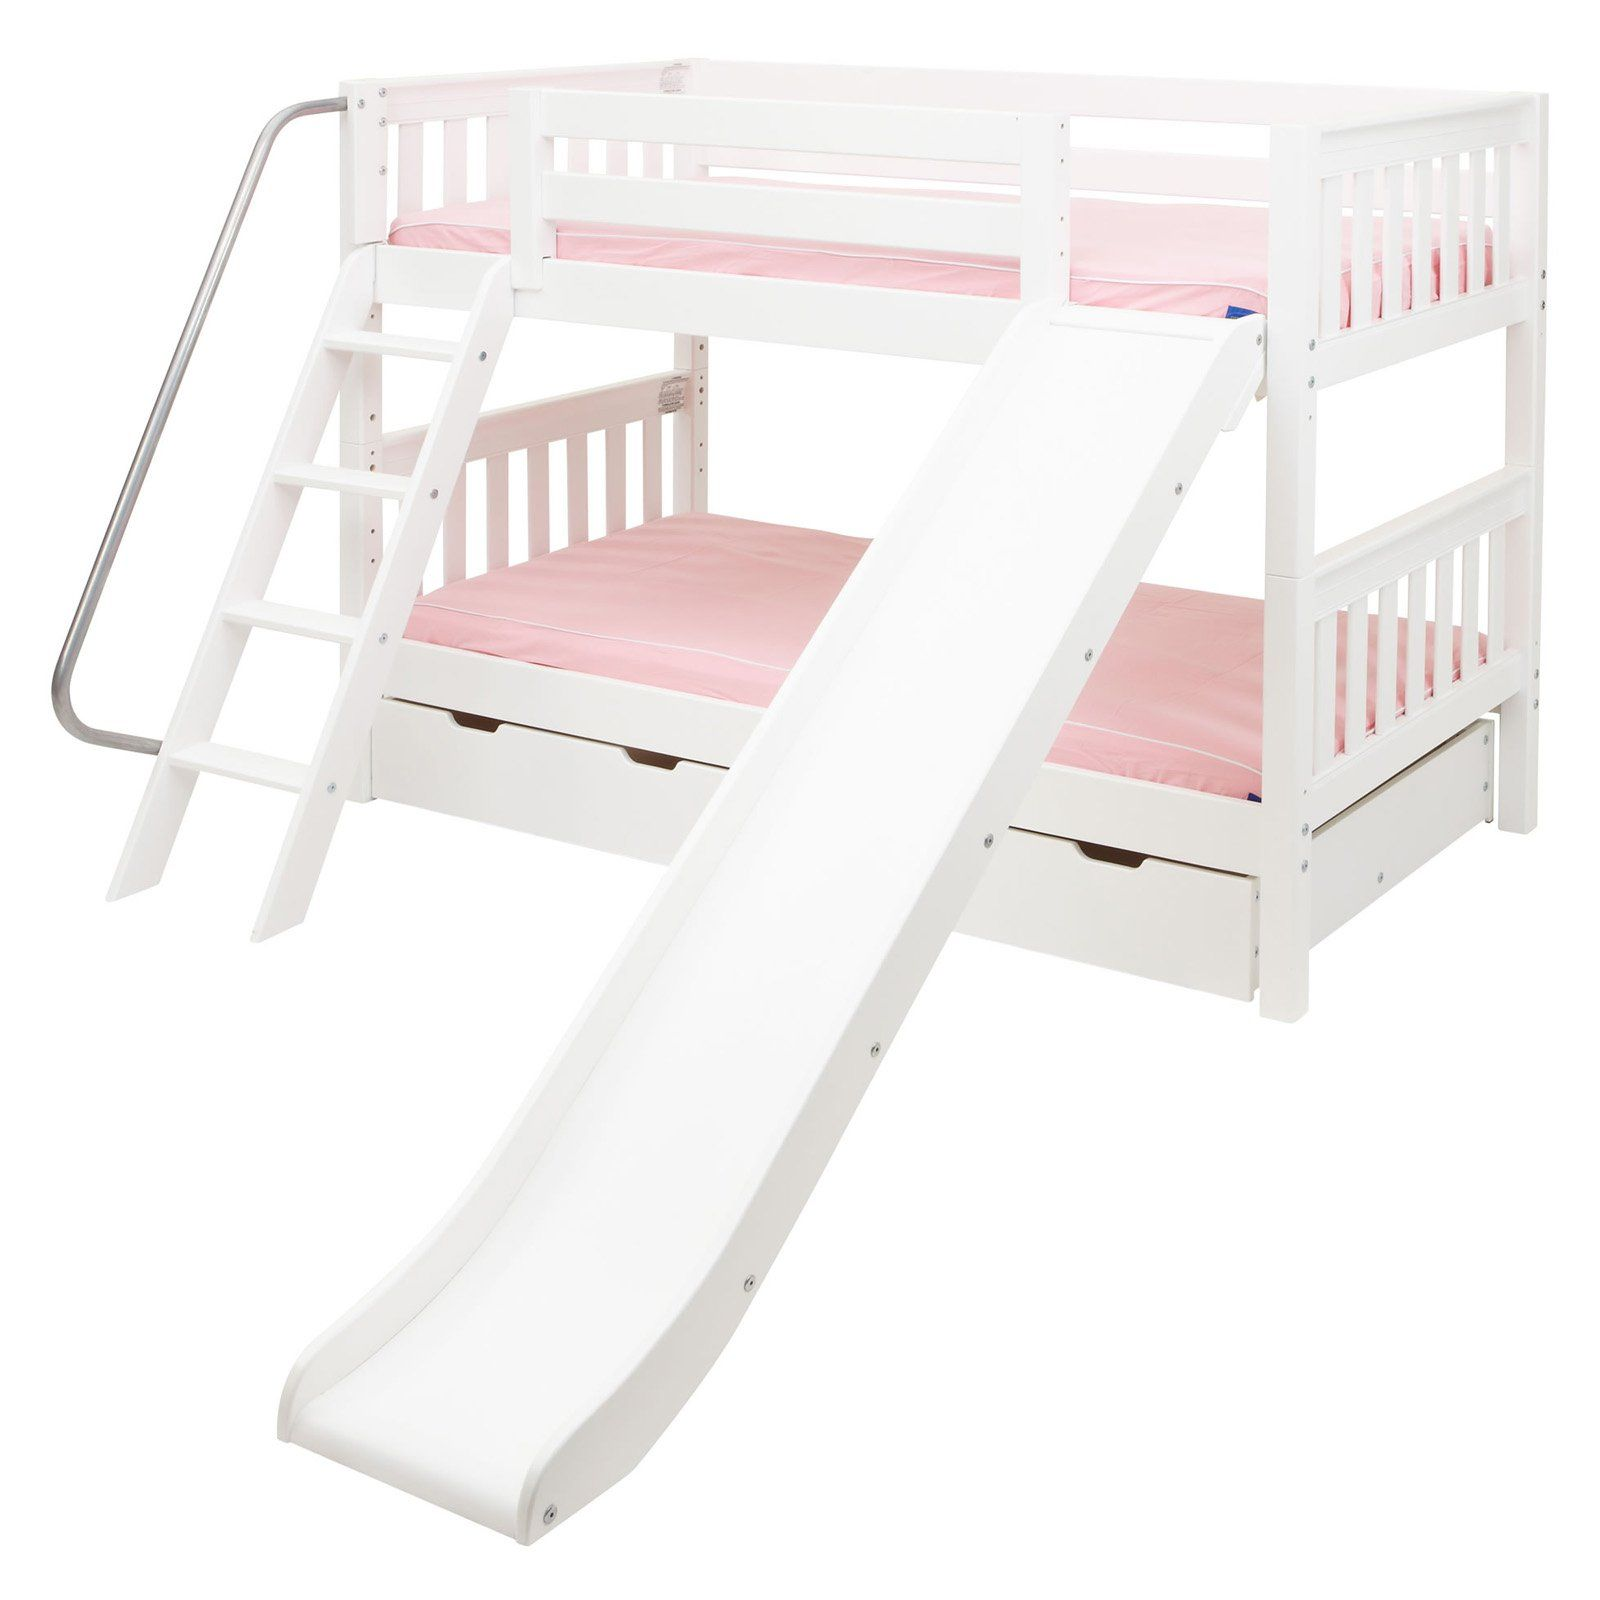 Twin low loft bed with slide  Pin by Foster Bwalya on Kids Rooms  Pinterest  Bunk beds Bed and